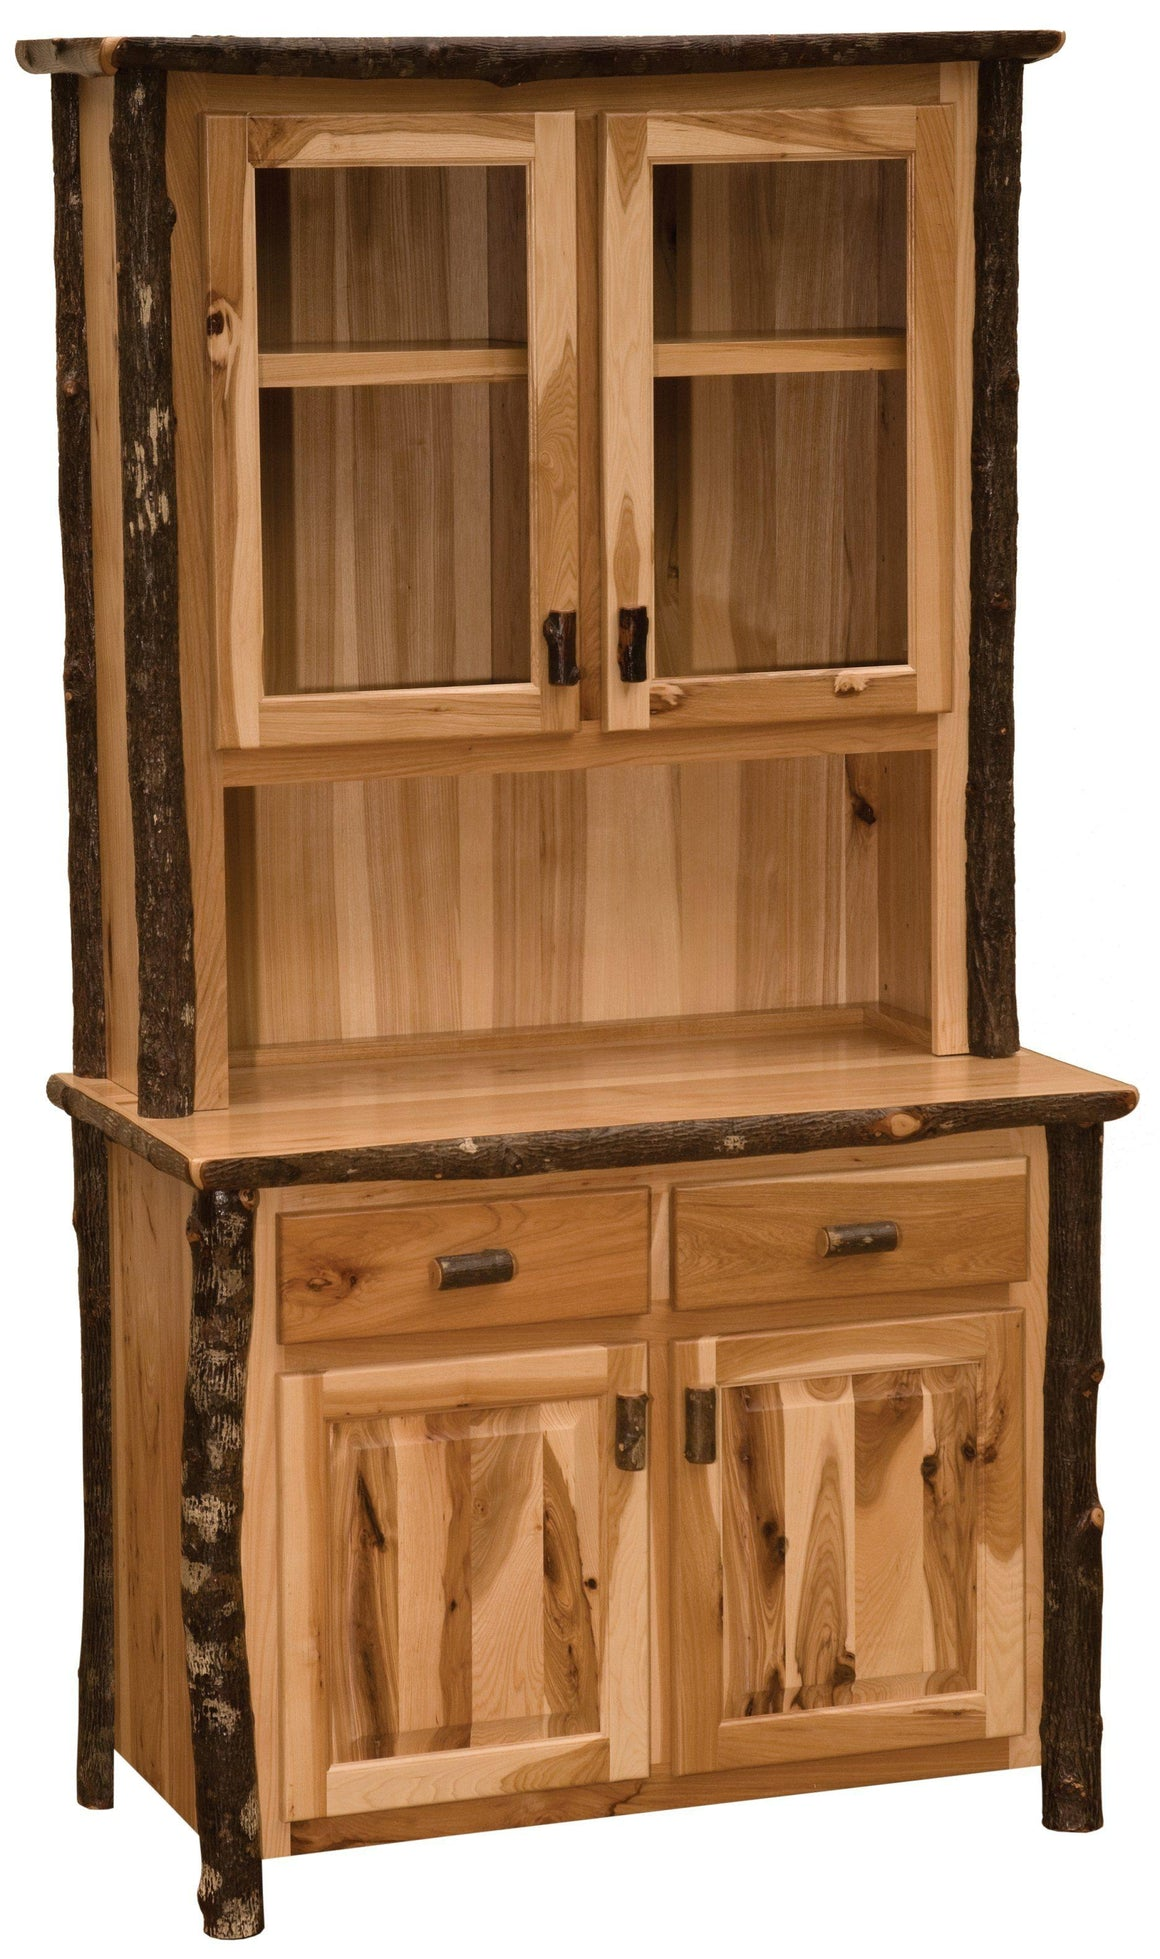 Hickory Log Buffet and Hutch - 48-inch - Standard Finish-Rustic Deco Incorporated